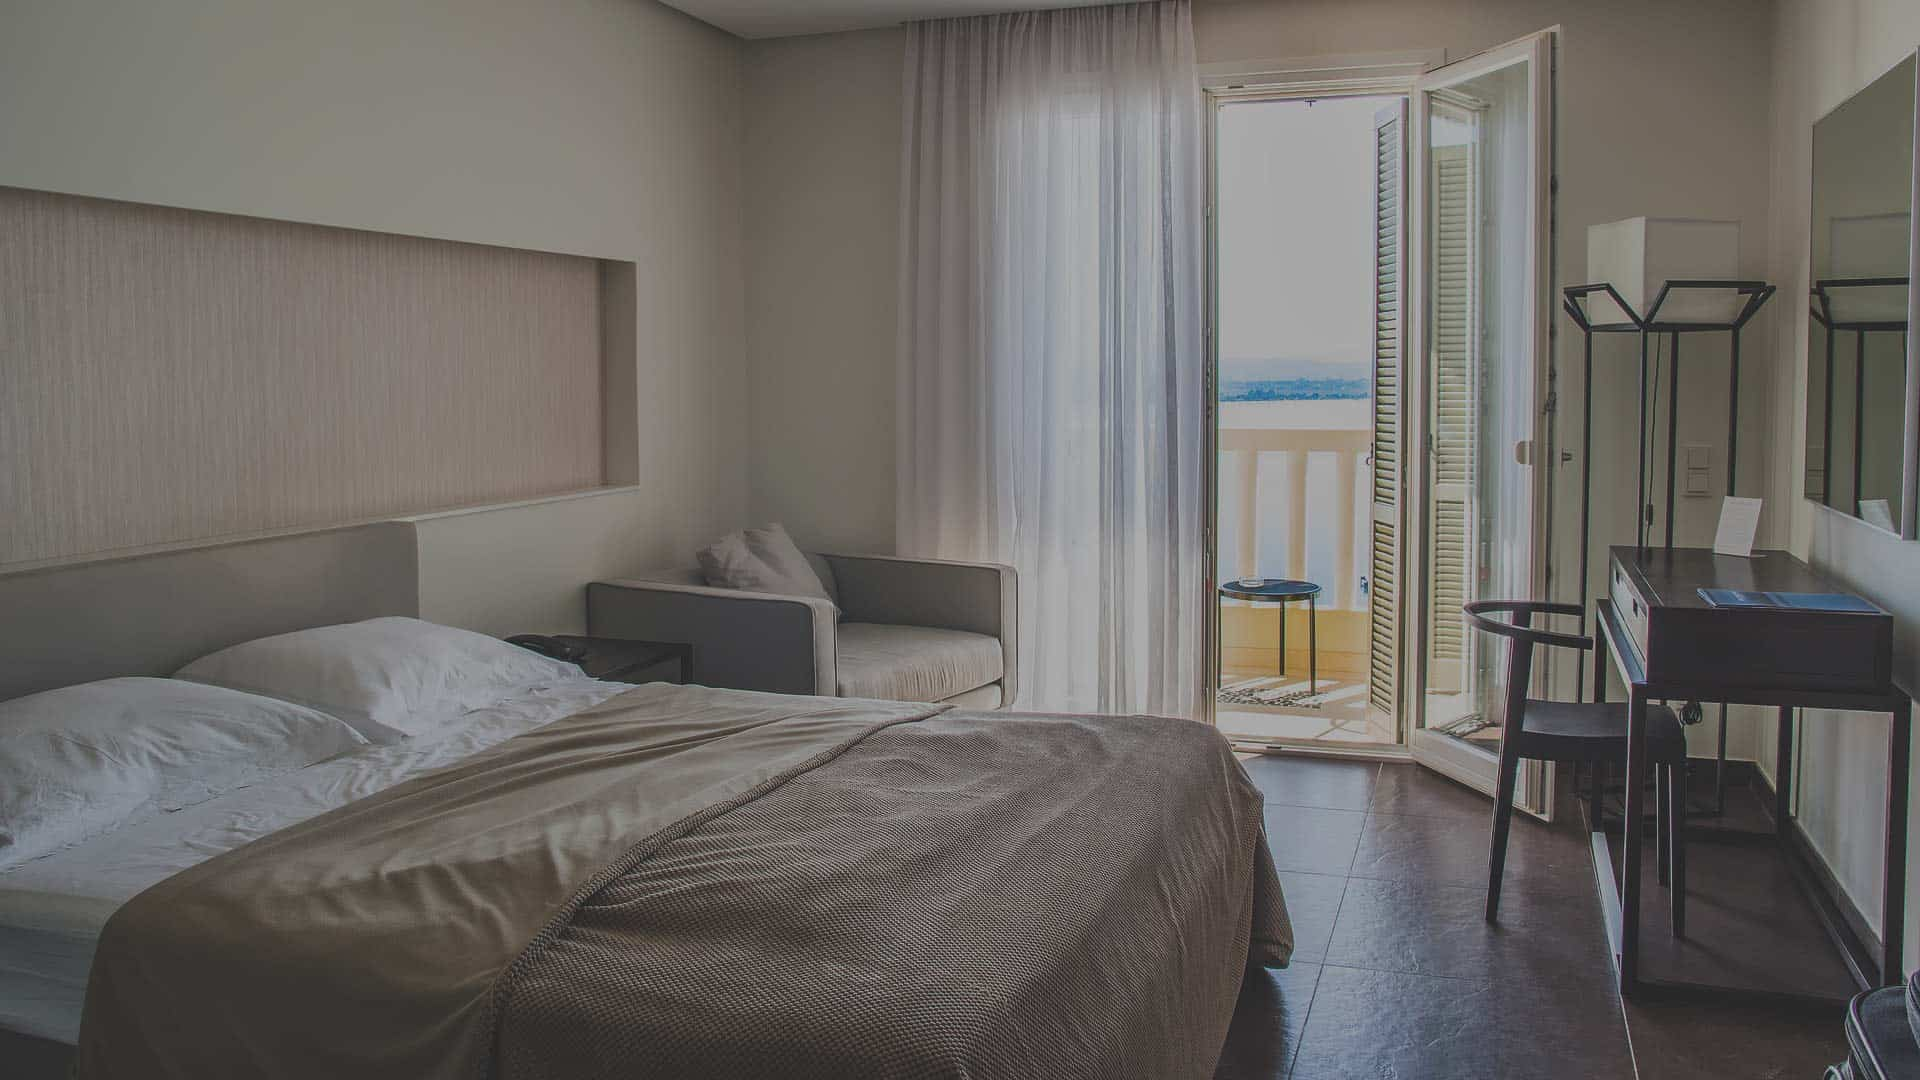 find budget accommodation - encontrar acomodações baratas